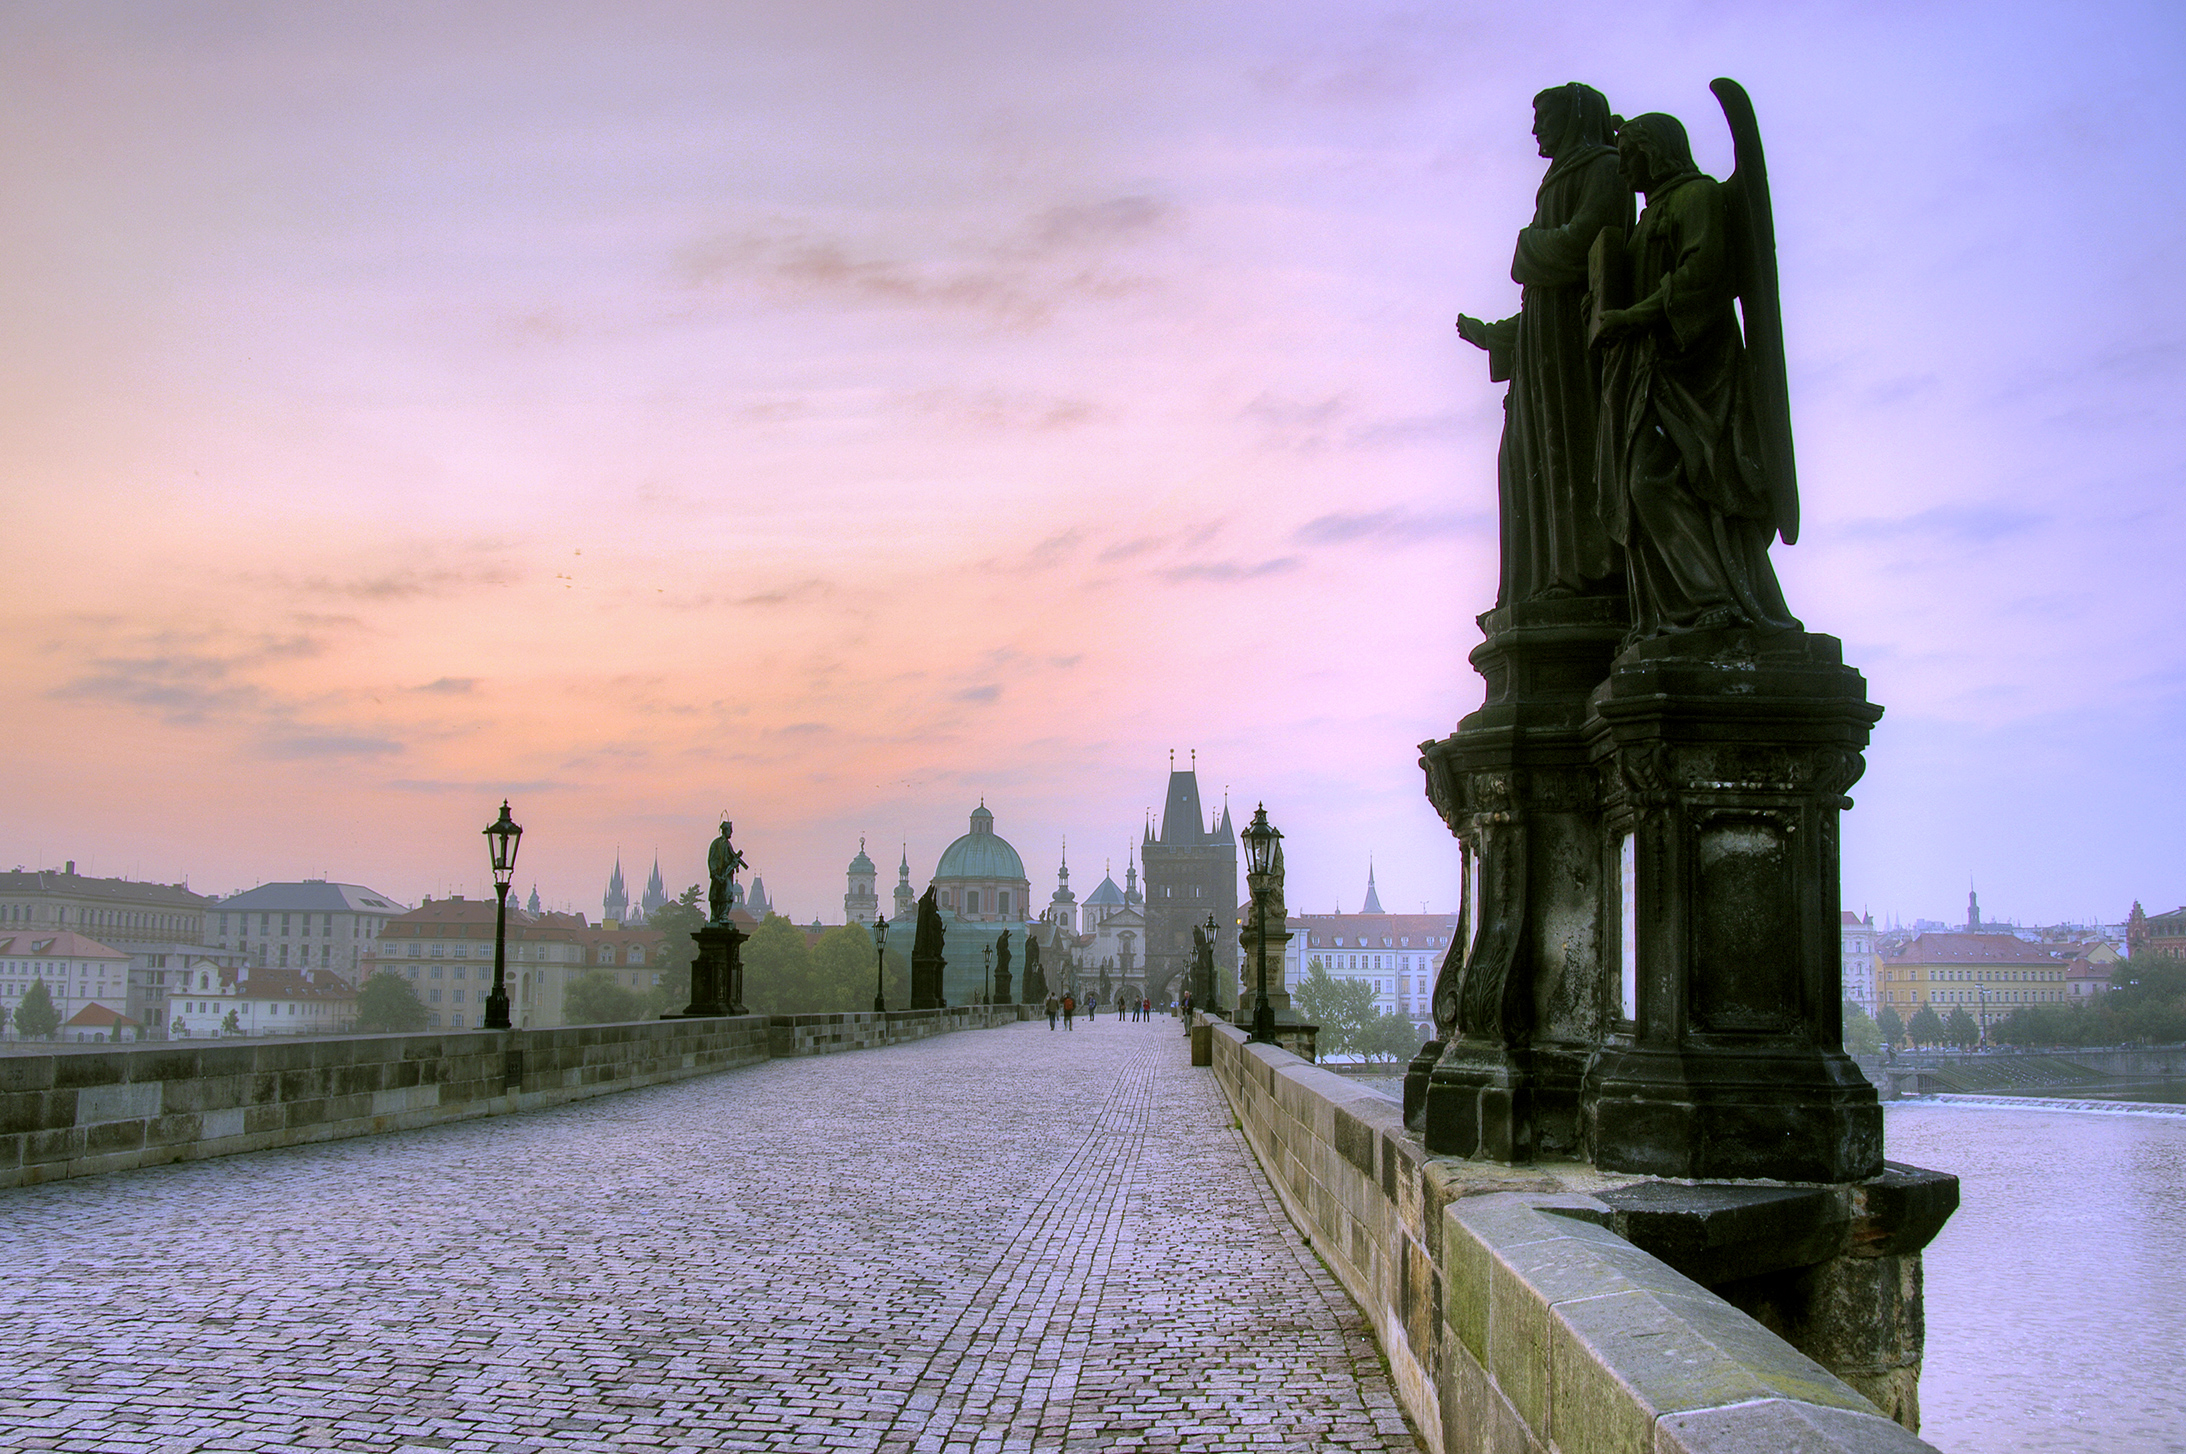 Charles Bridge at Sunrise